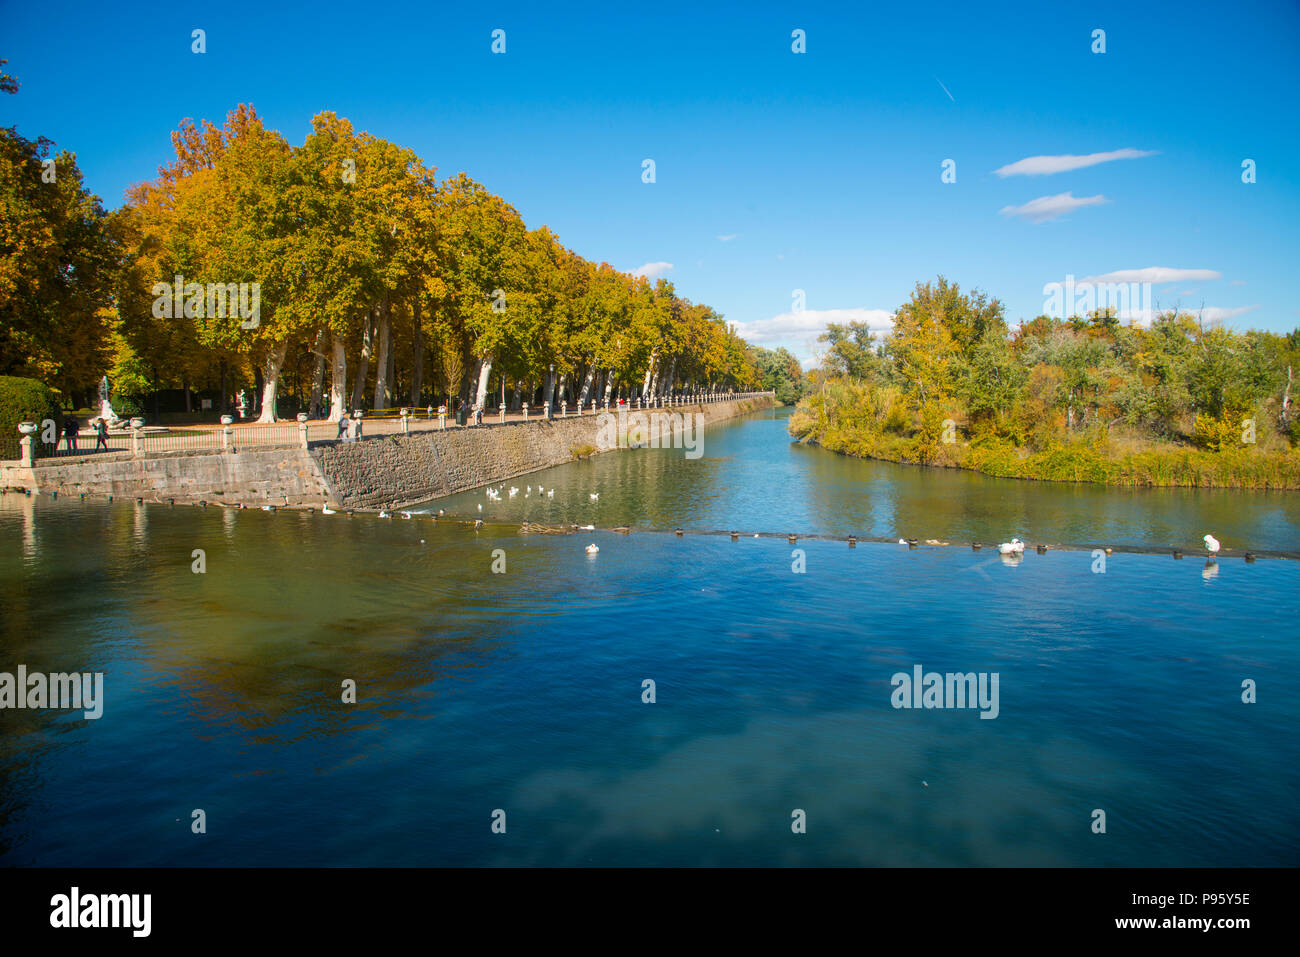 Canal of river Tajo and La Isla gardens in Autumn. Aranjuez, Madrid province, Spain. - Stock Image